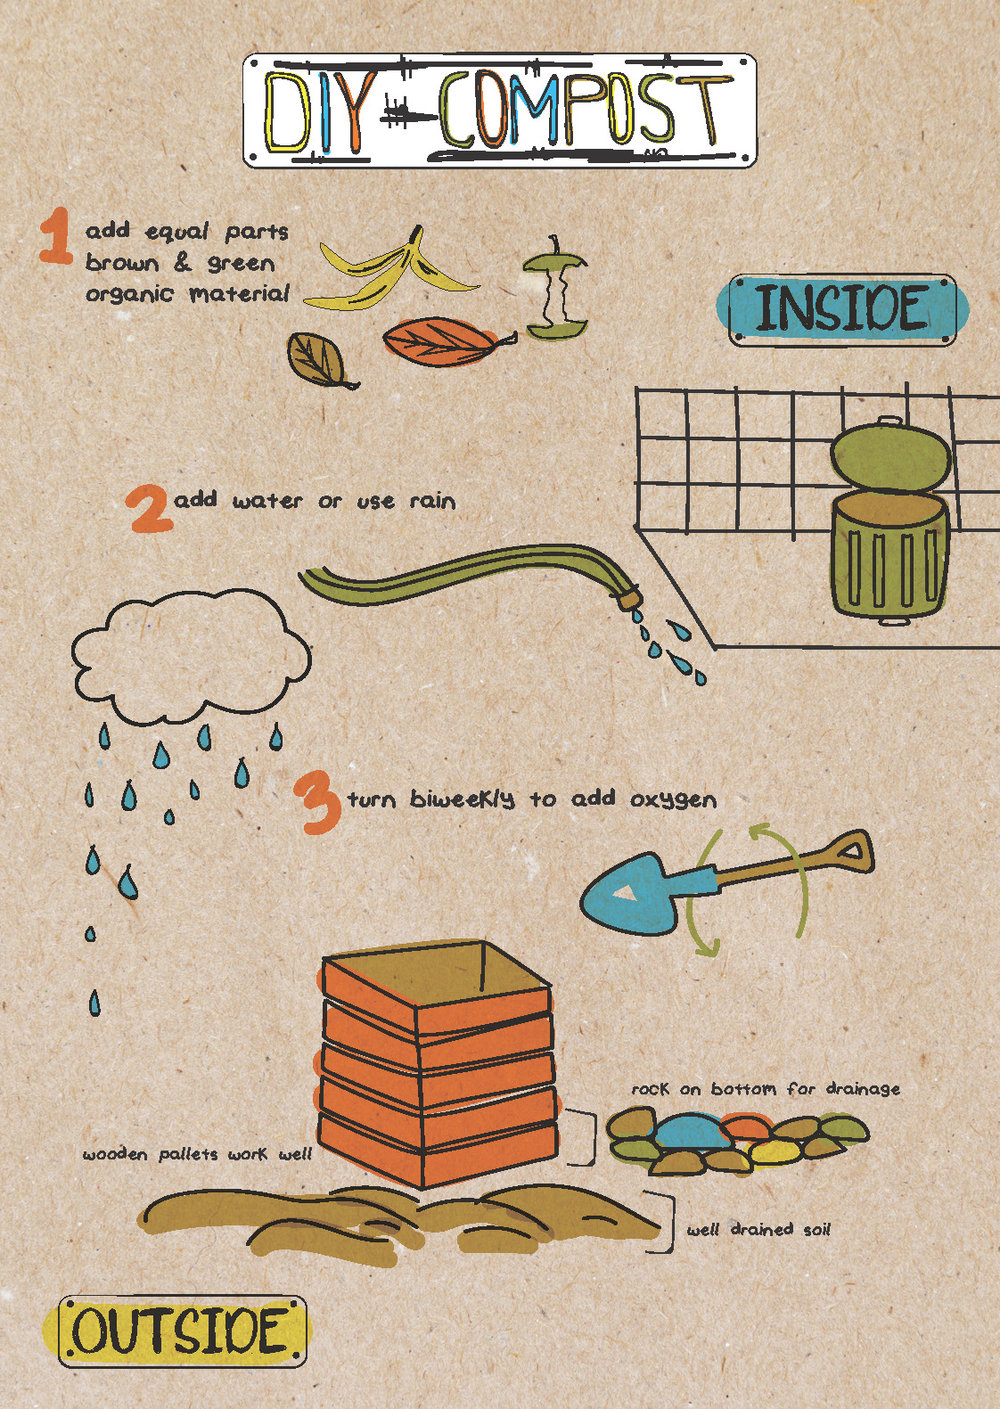 Composting Infographic 1 of 2